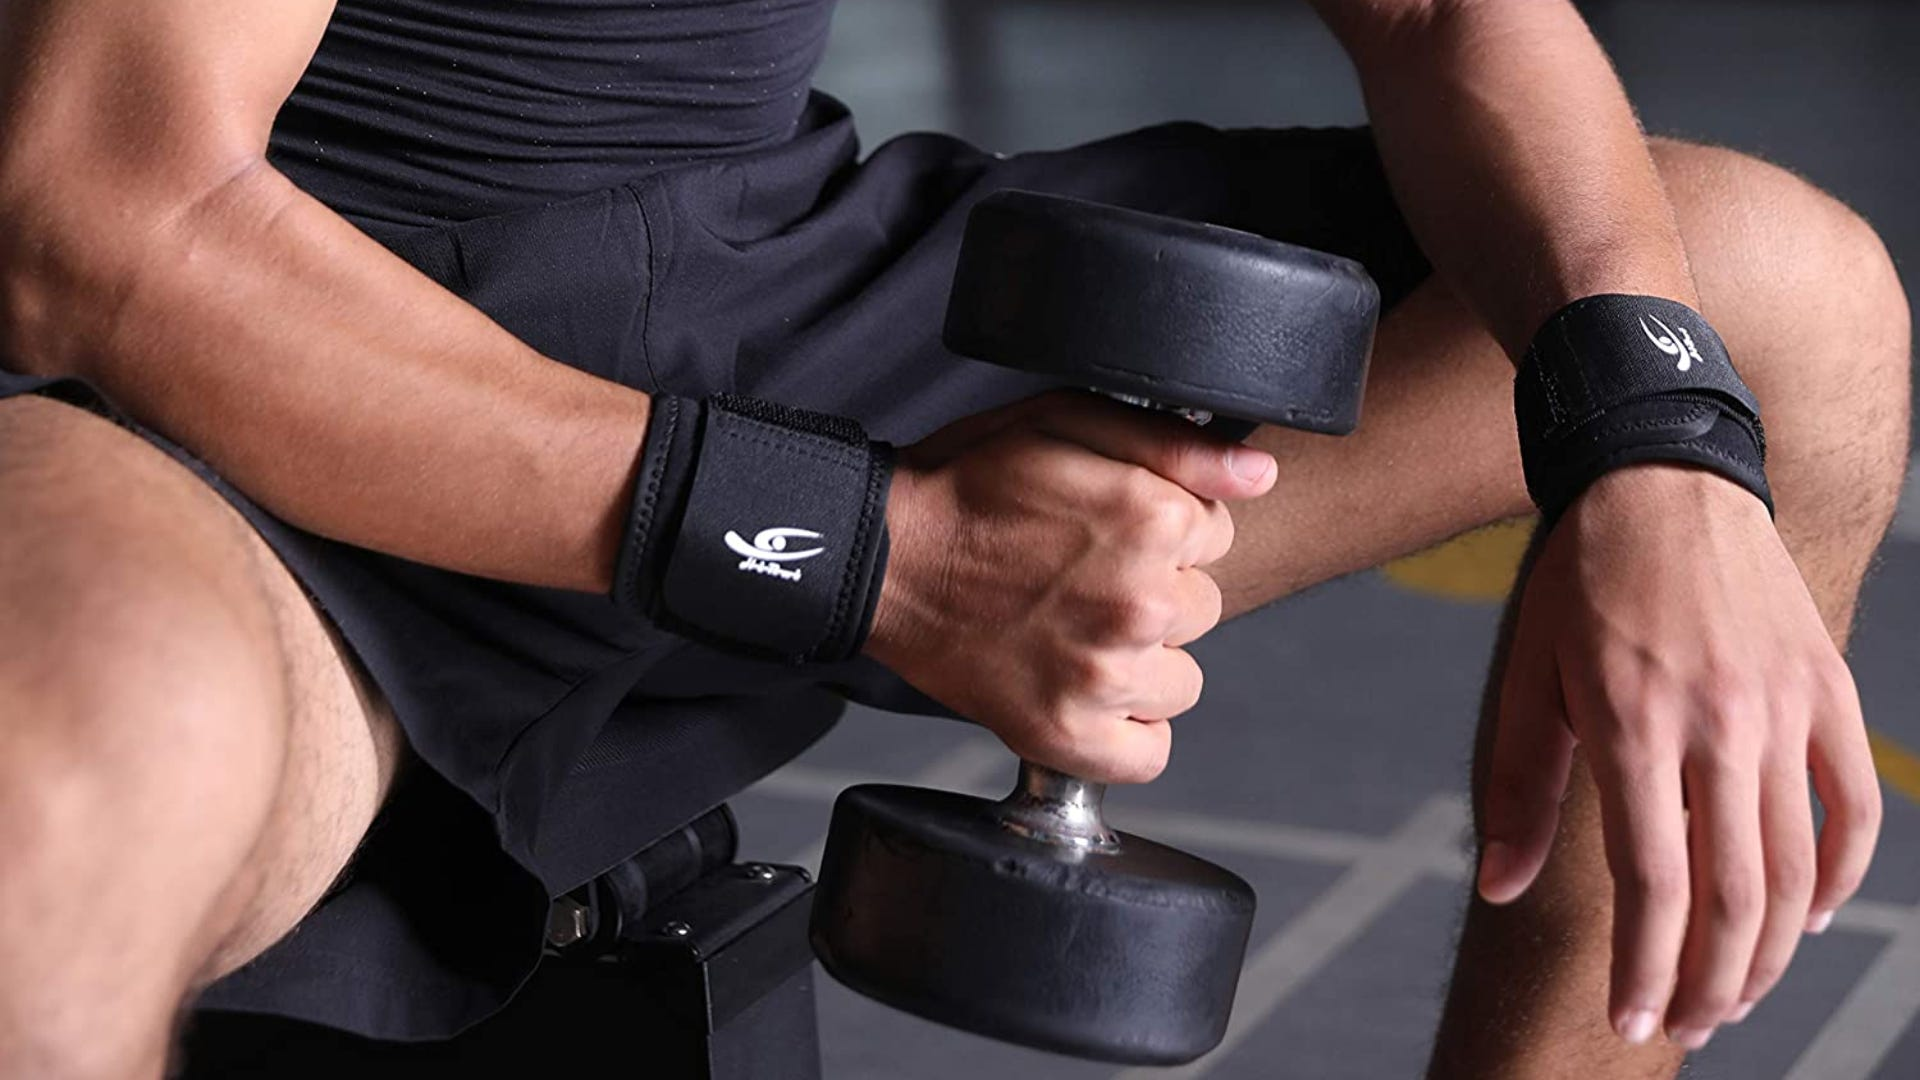 A man wearing two black wrist braces while lifting a dumbell.